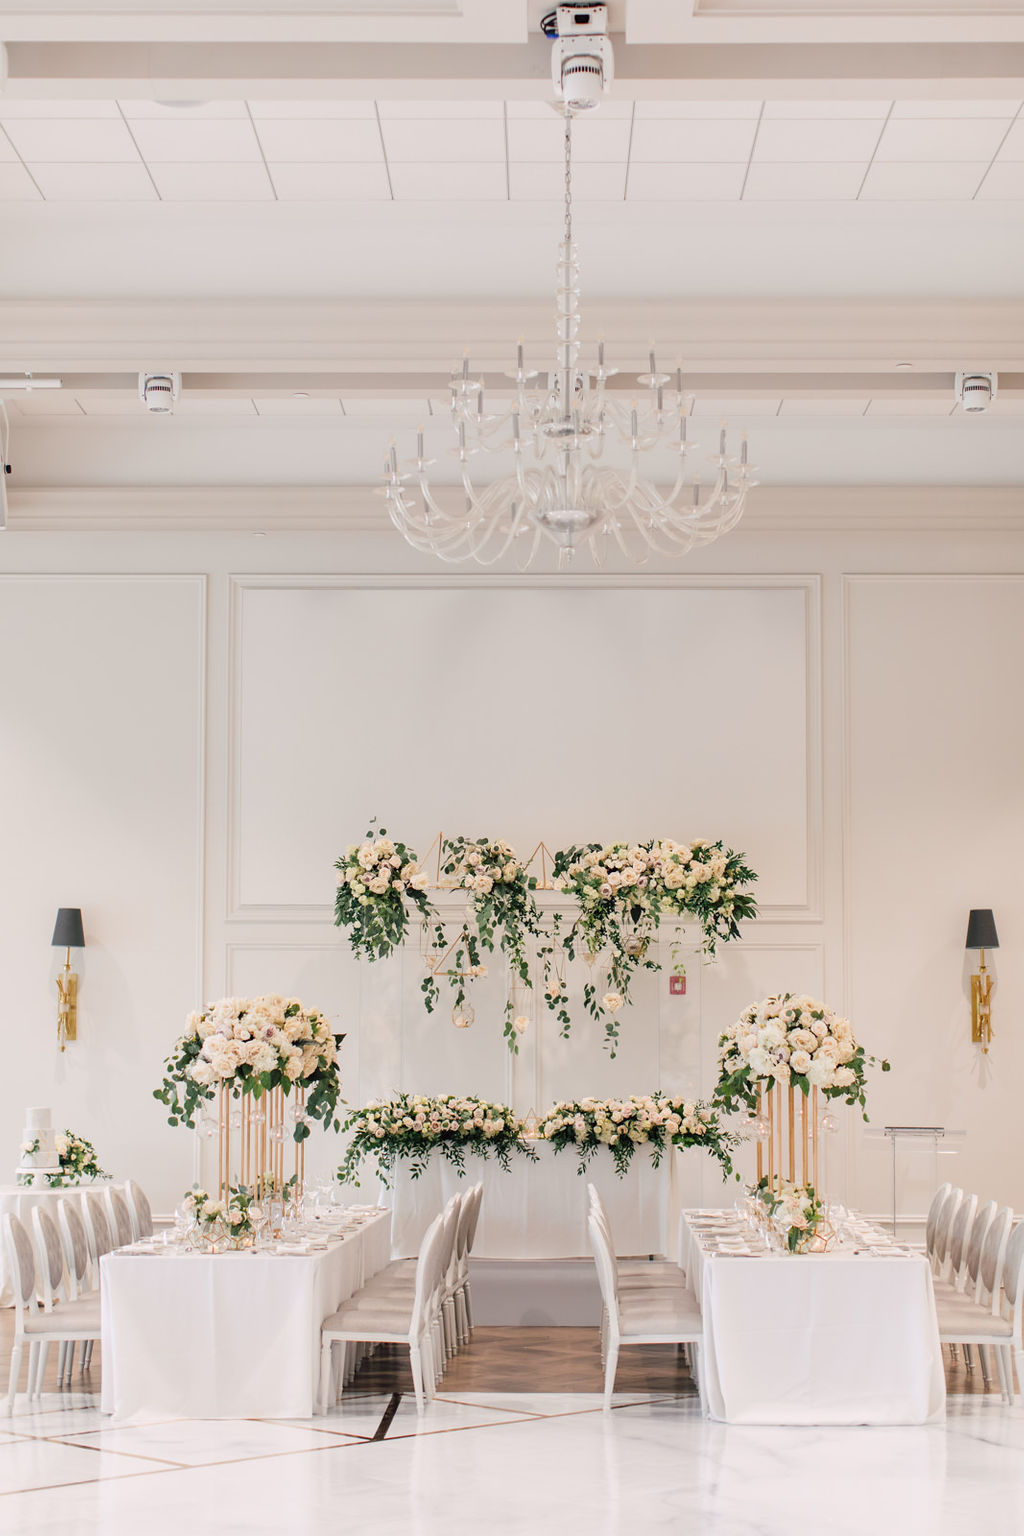 Modern garden wedding with marble and gold accents at Arlington Estate